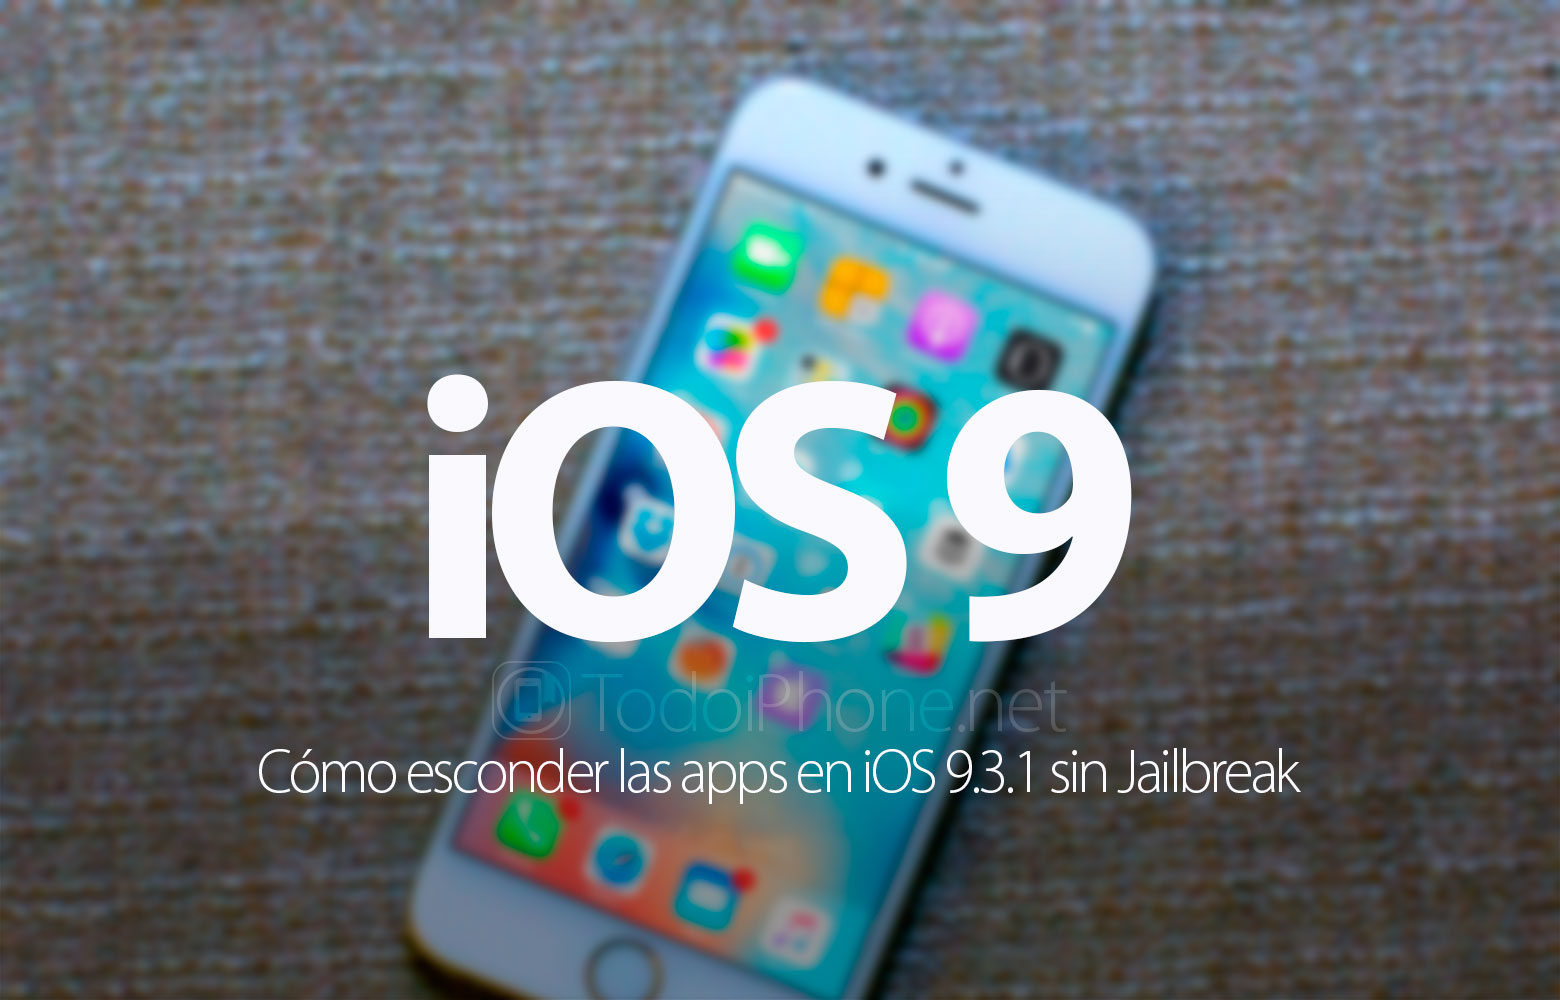 como-esconder-apps-ios-9-3-1-sin-jailbreak